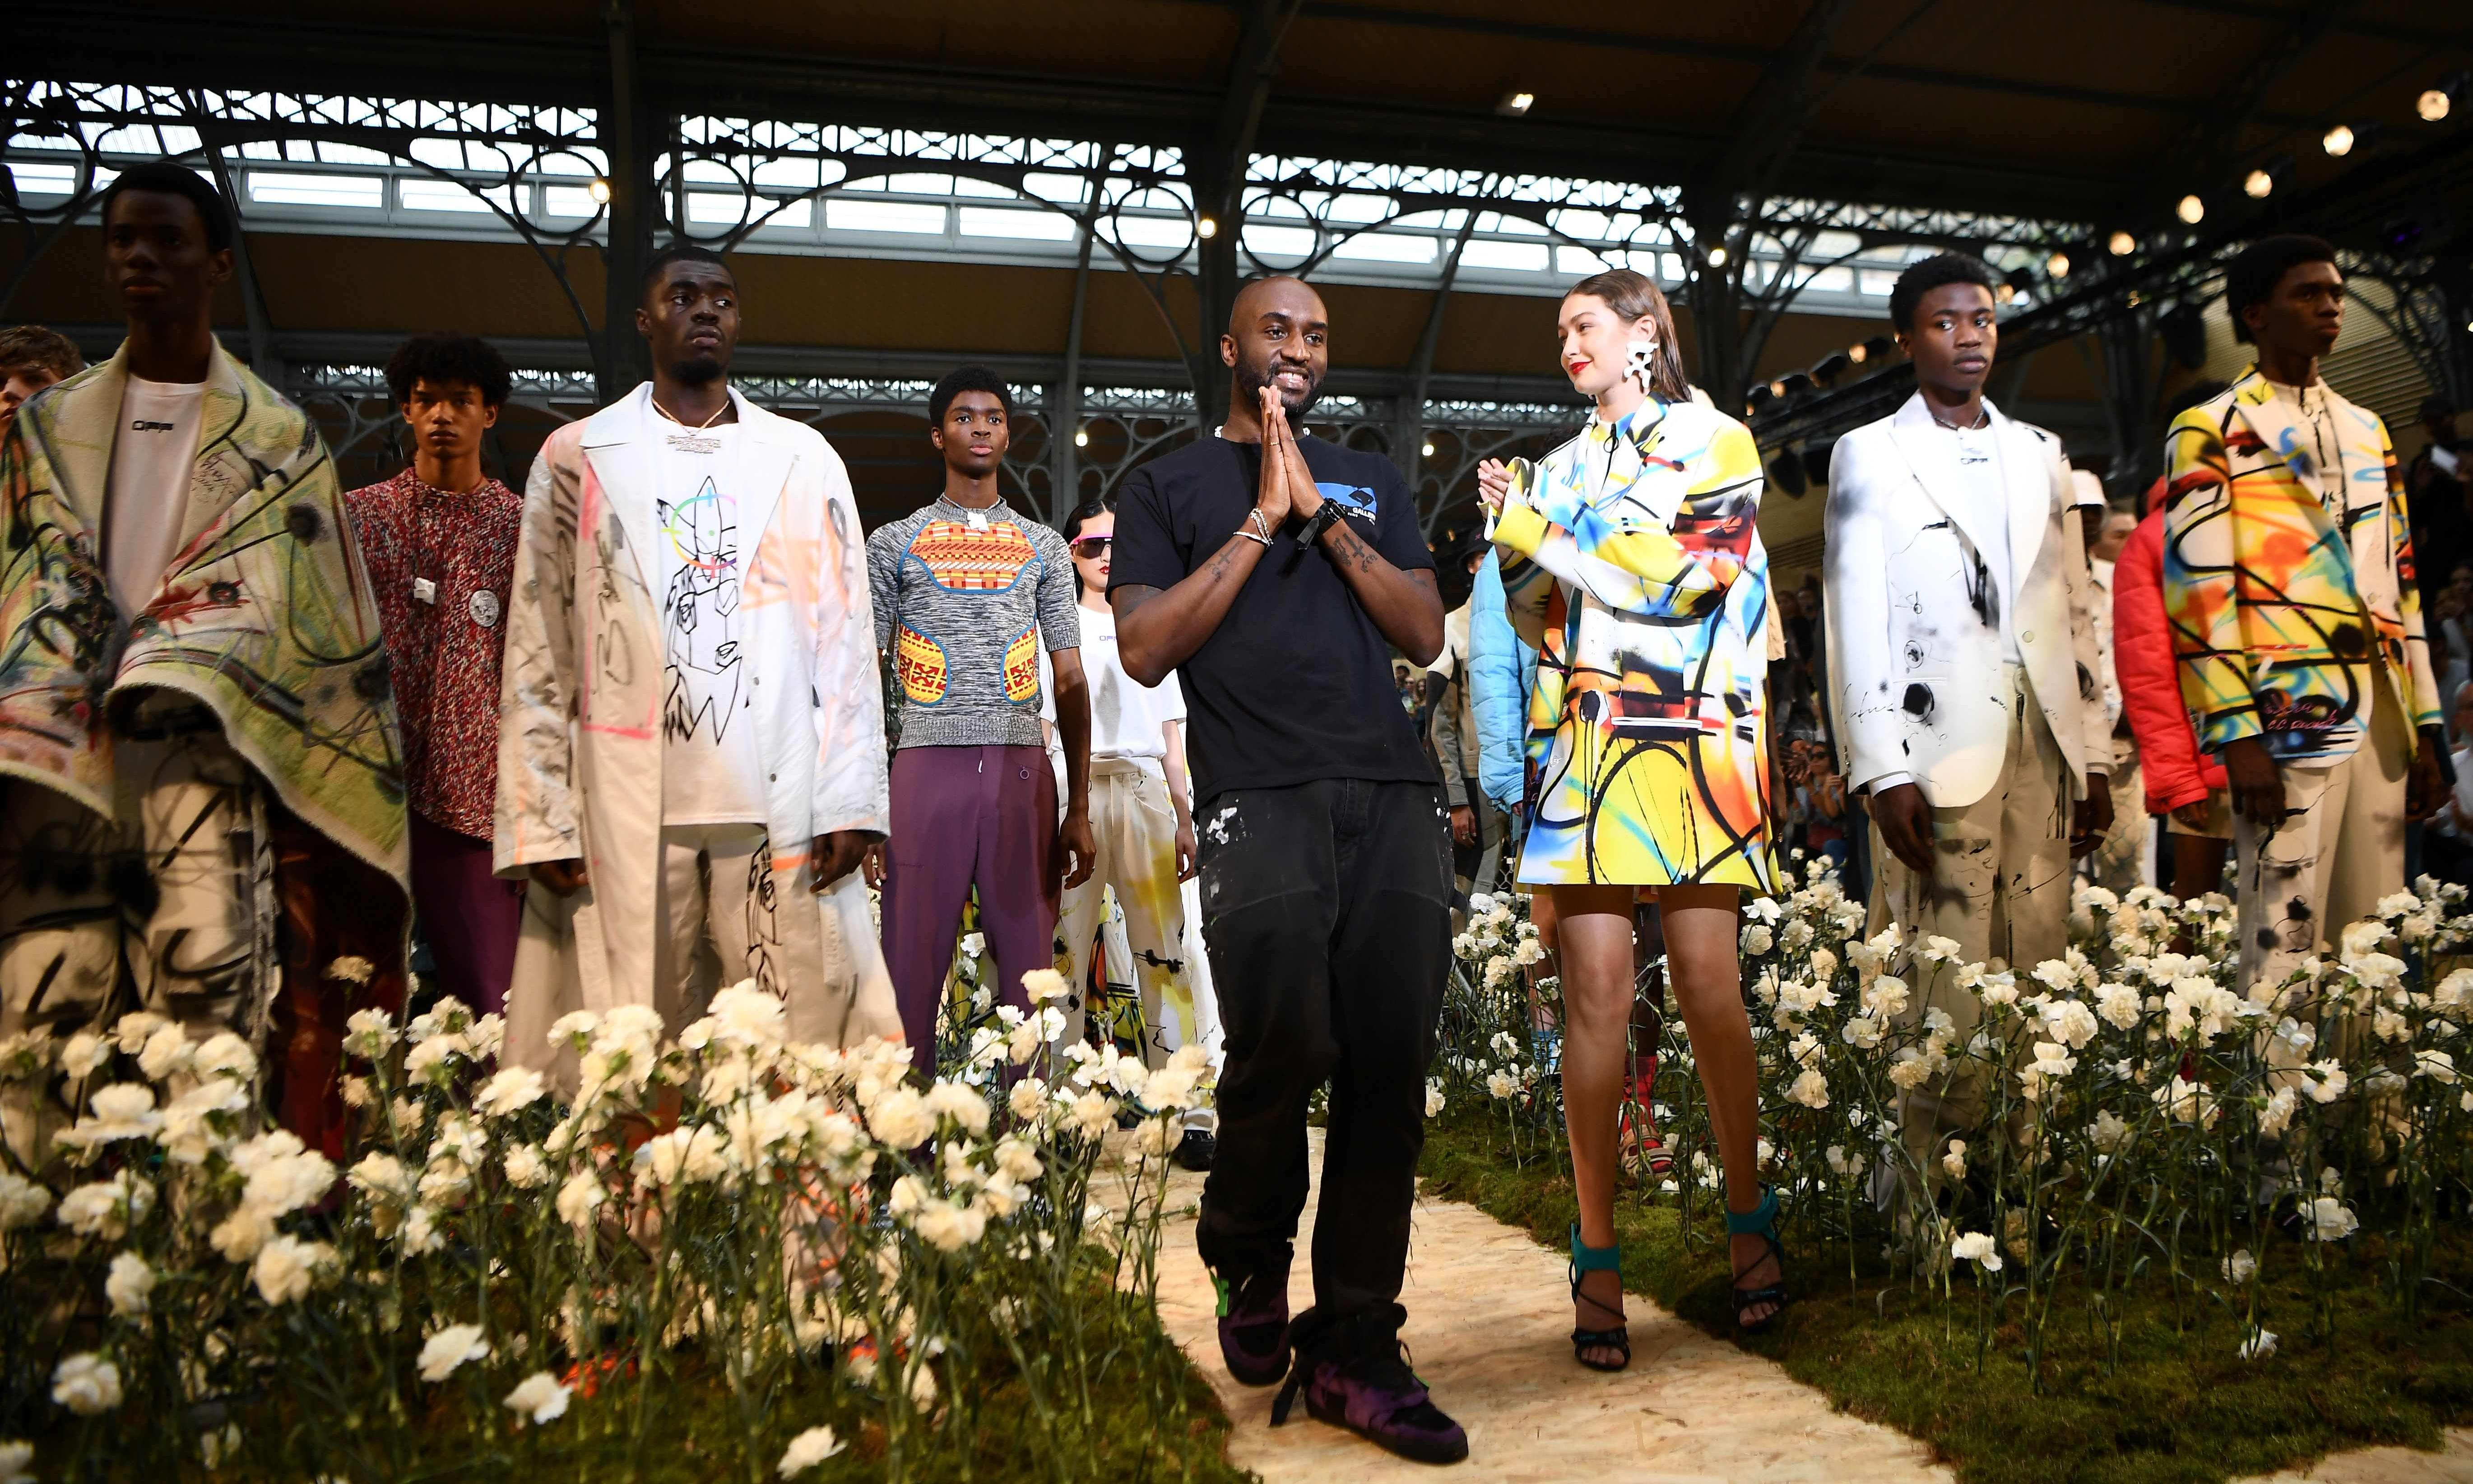 Virgil Abloh draws from 1980s graffiti culture for Off-White show